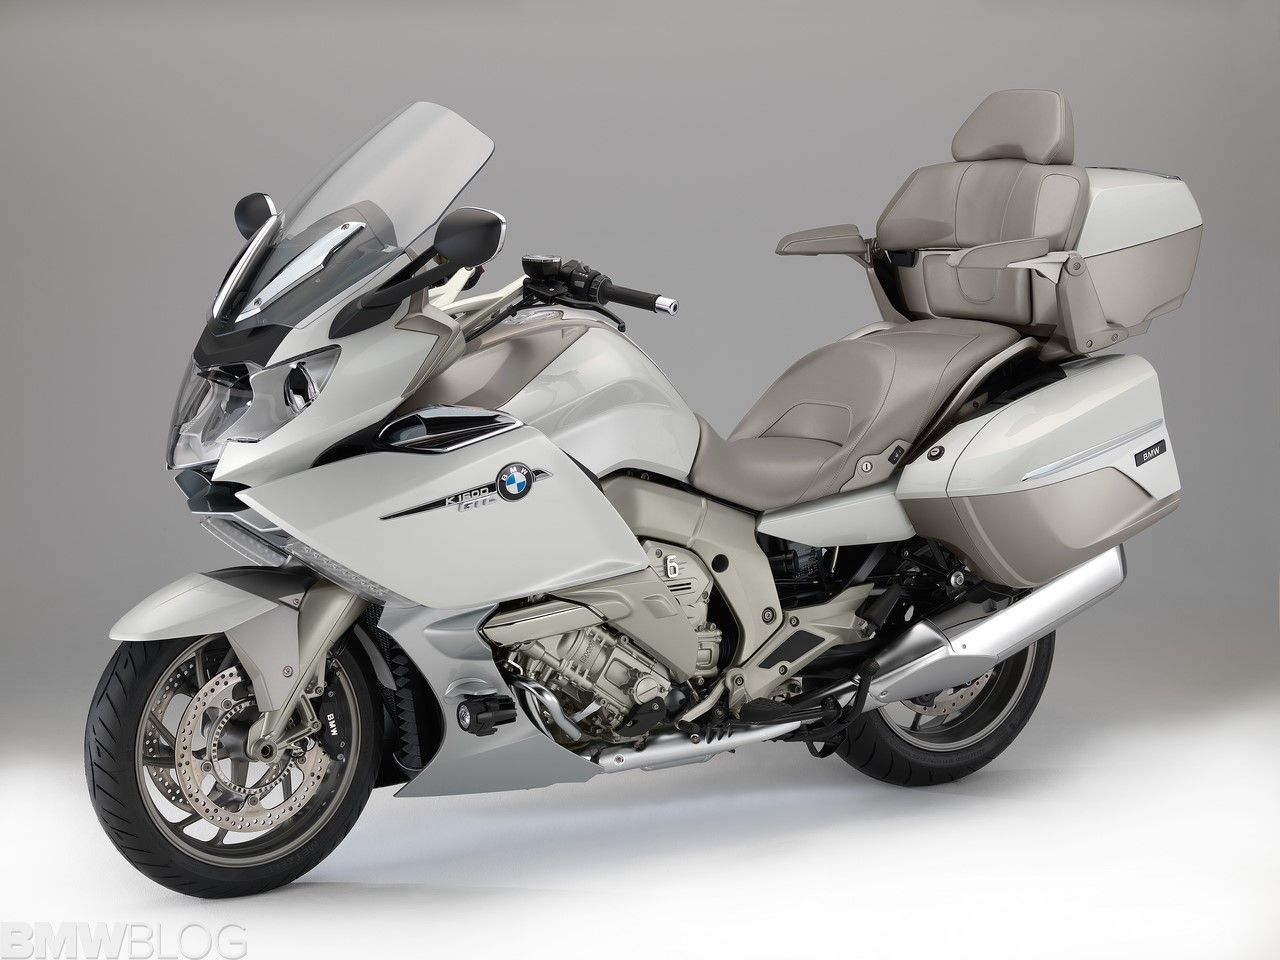 The New Bmw K 1600 Gtl Exclusive Bmw Motorcycle Touring Bmw Motorrad Bmw Motorcycles